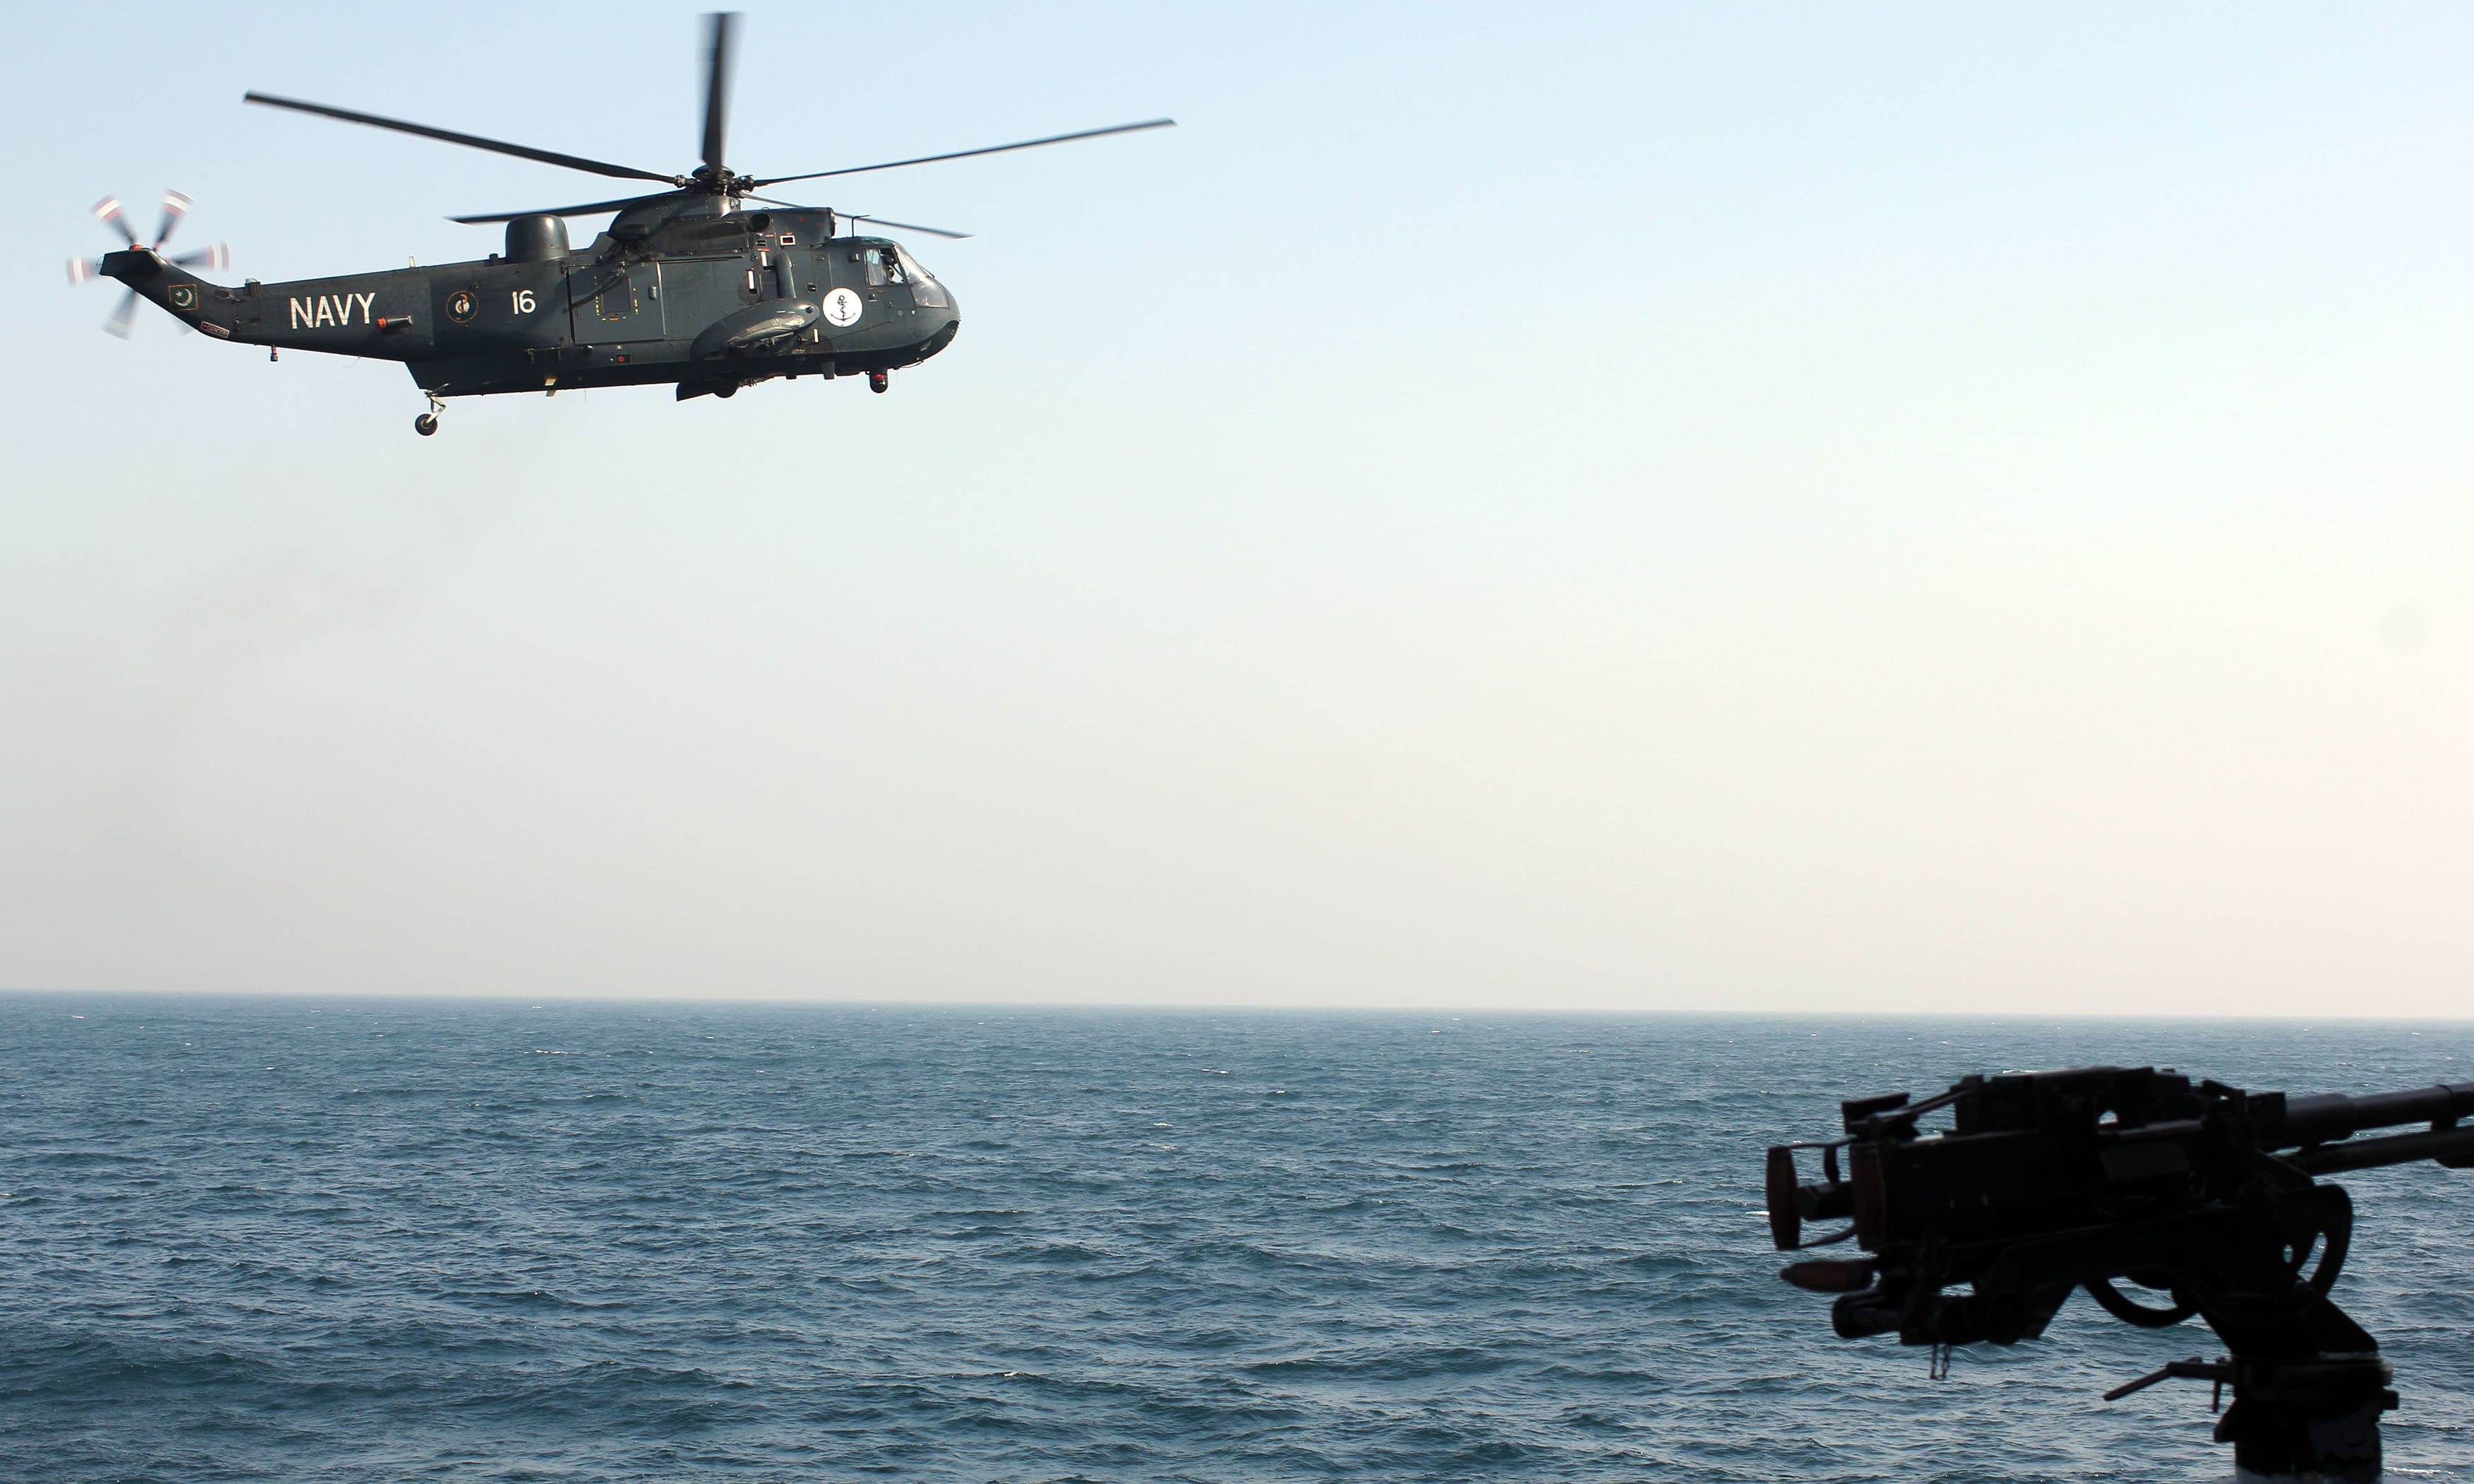 The Sea King helicopter is a multi-role helicopter. —Tauseef Mallick/File